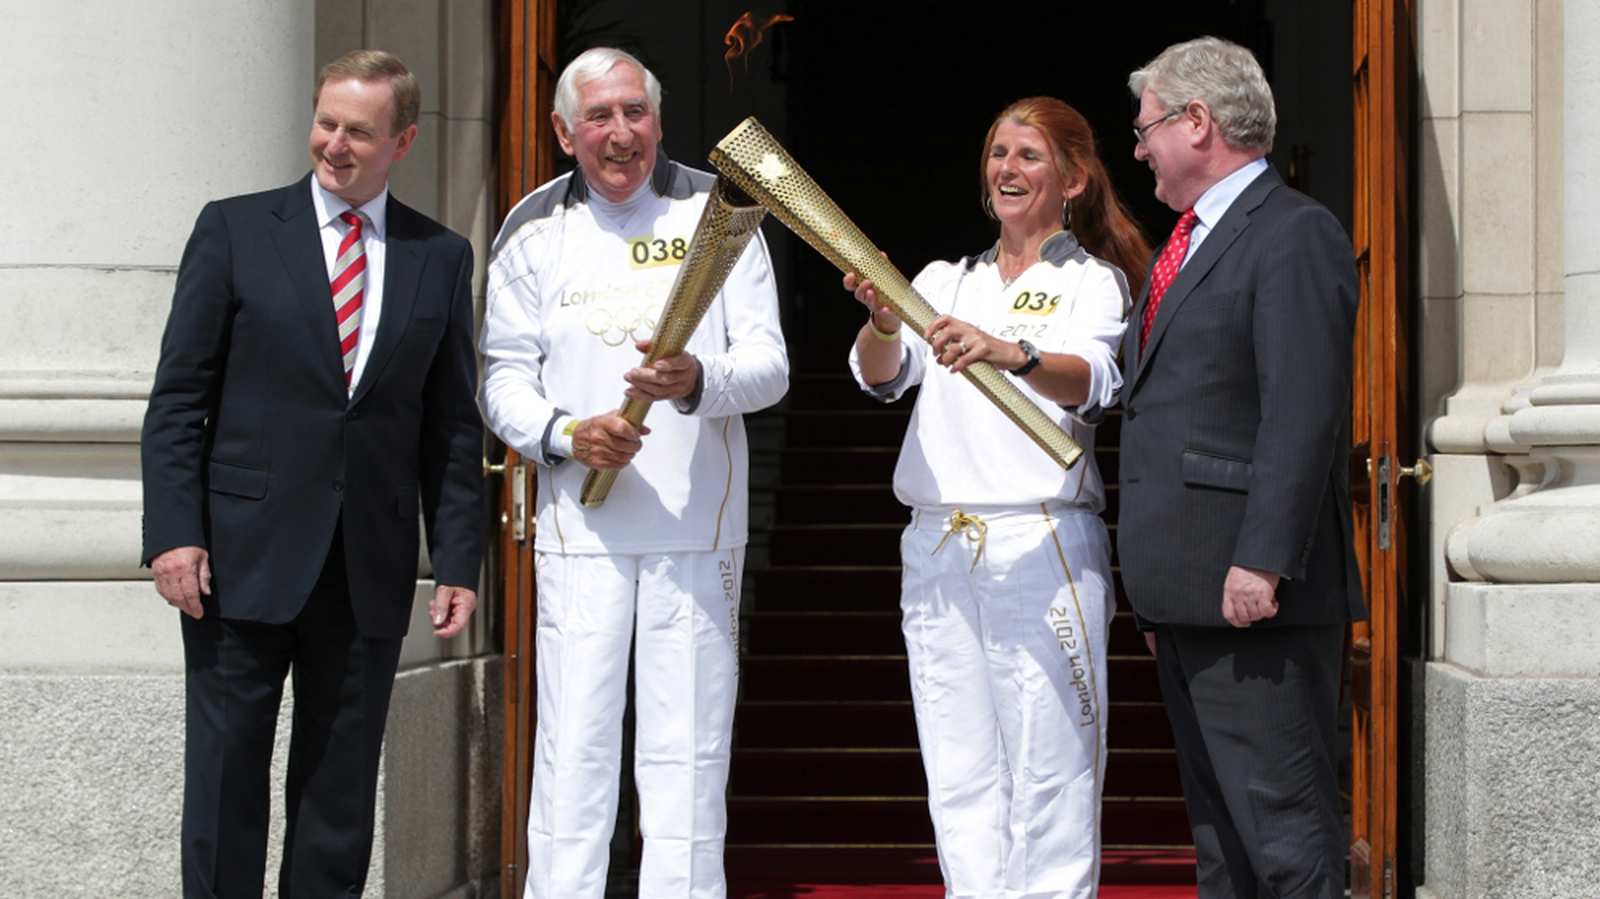 Thousands Turn Out To See Olympic Torch In Dublin